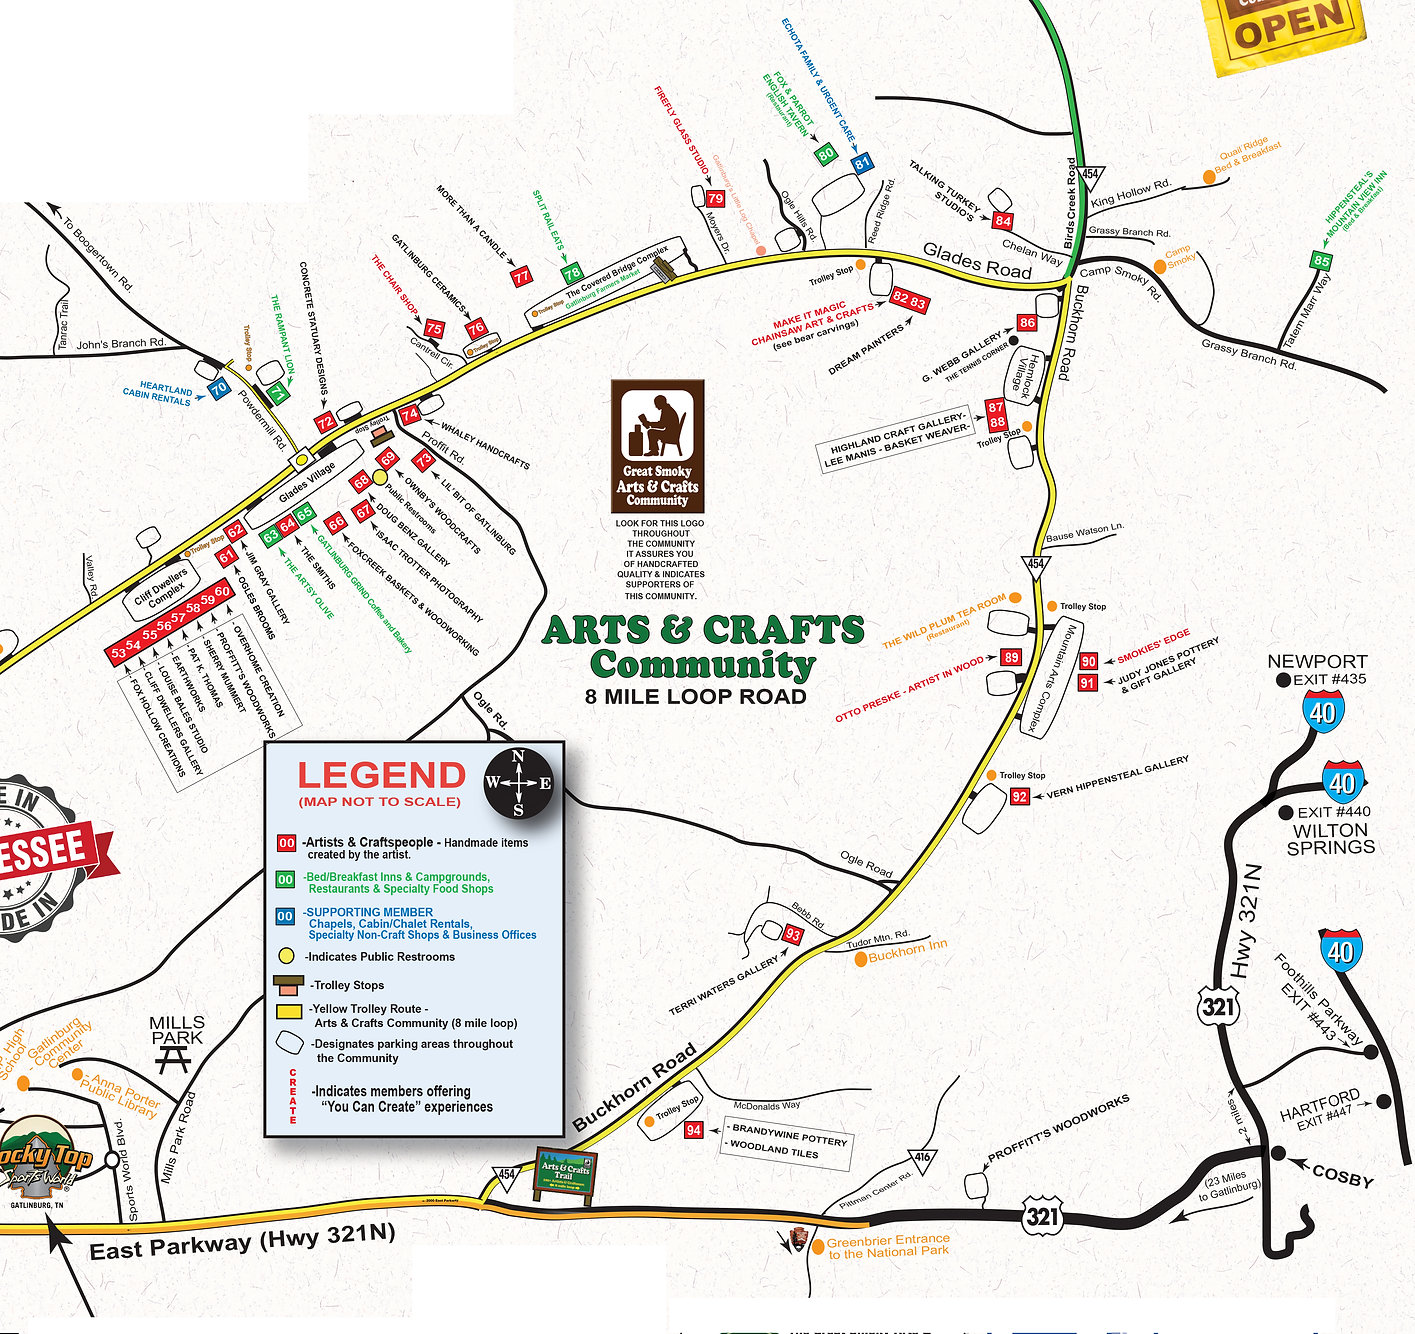 acc brochure MAP 2021-22 right Map for w